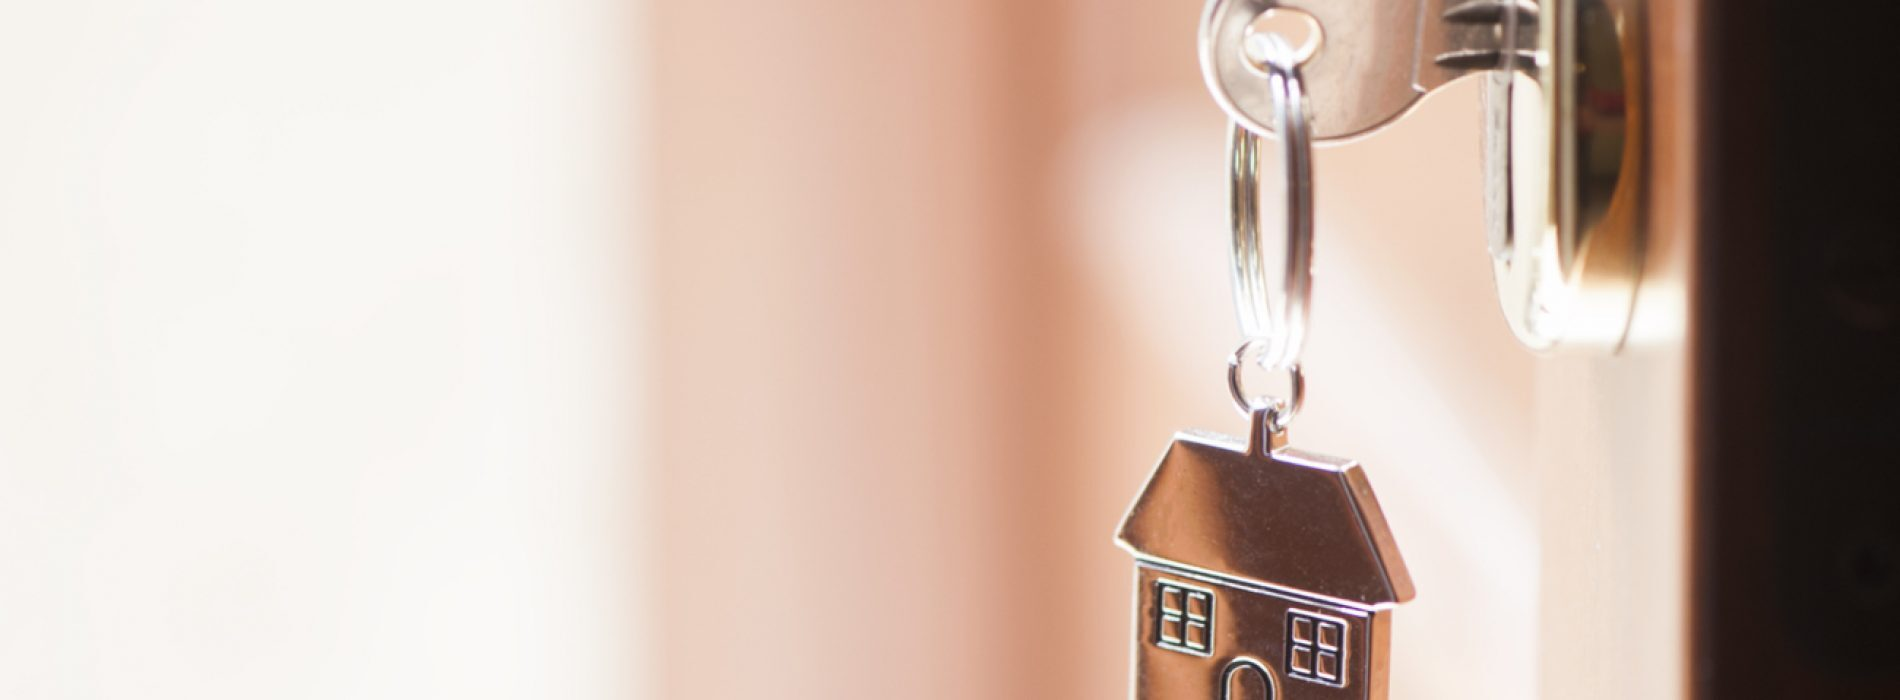 Housing Market  Research: Region Image The First Criterion in Buying House